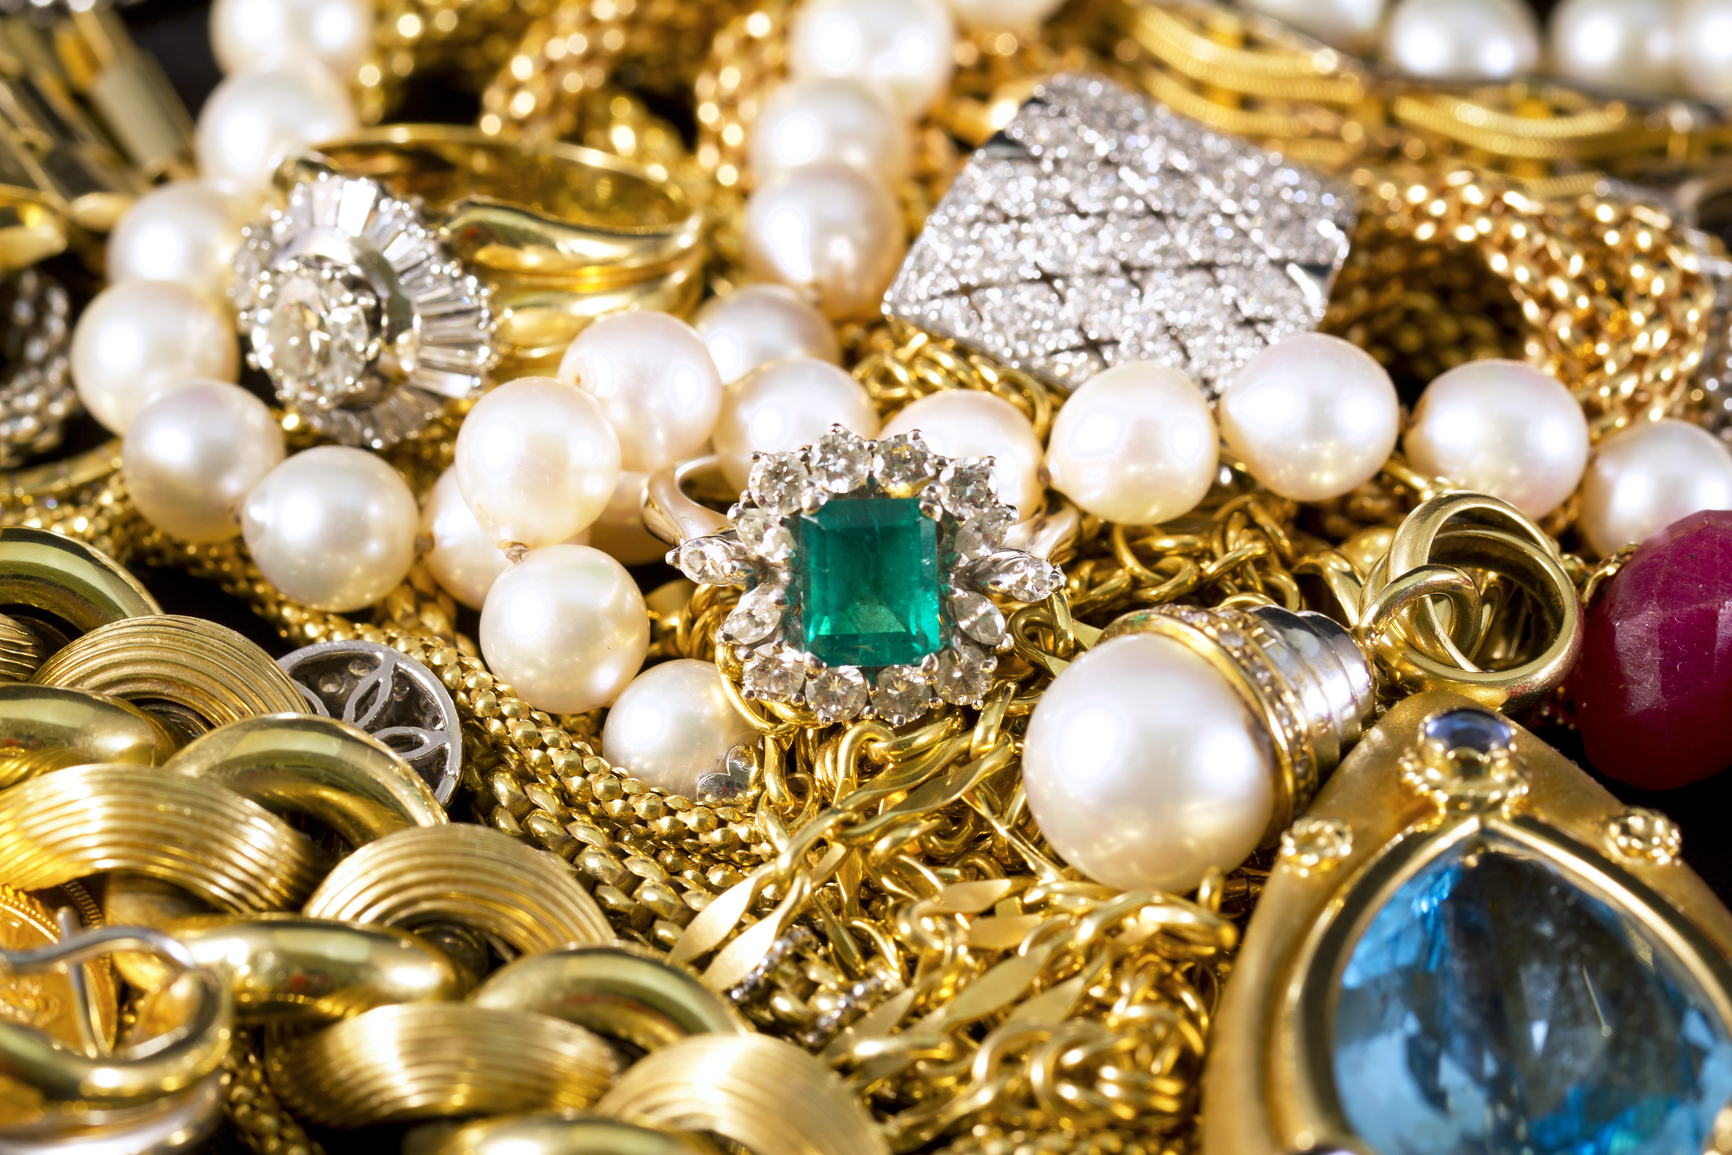 Selling Your Jewelry for Cash: Is It Worth It?